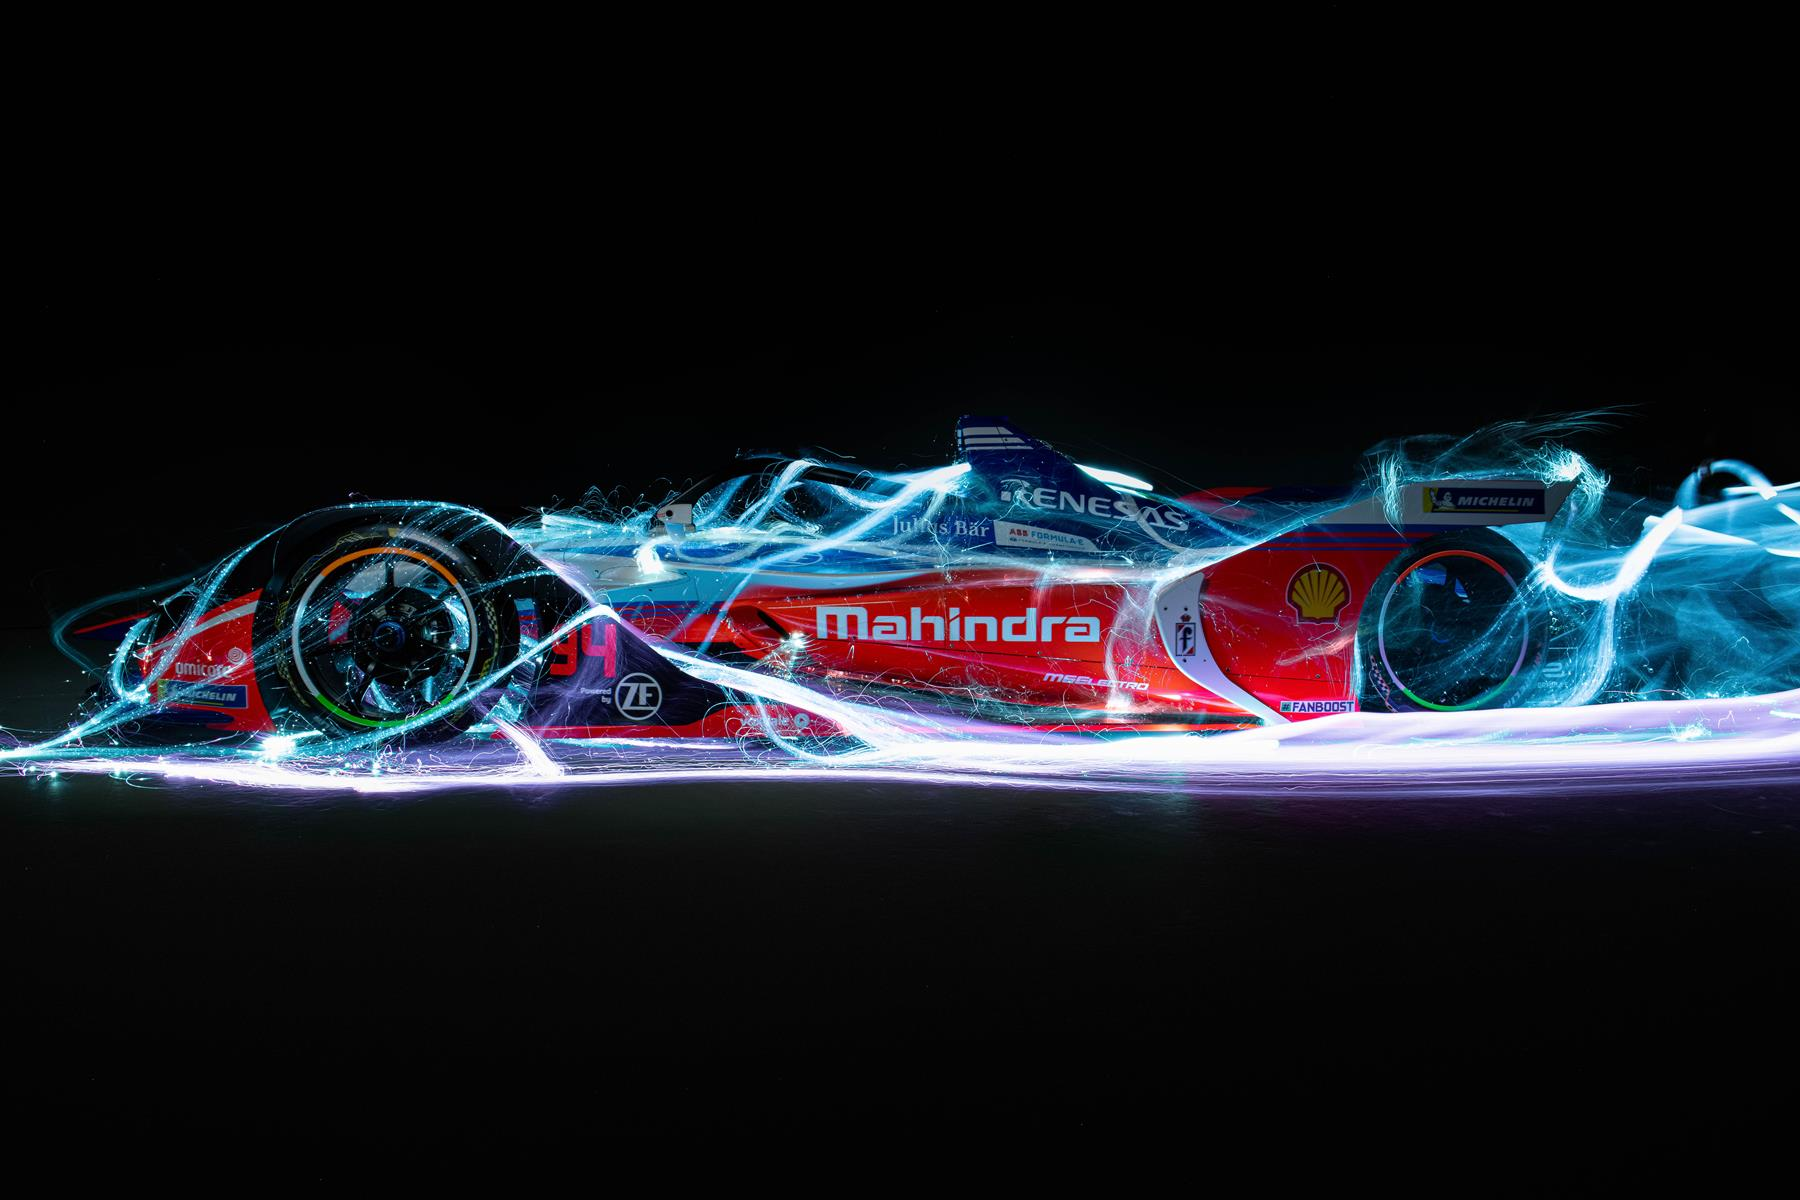 Mahindra-Formula-E-Car-Spacesuit-Media-Lou-Johnson